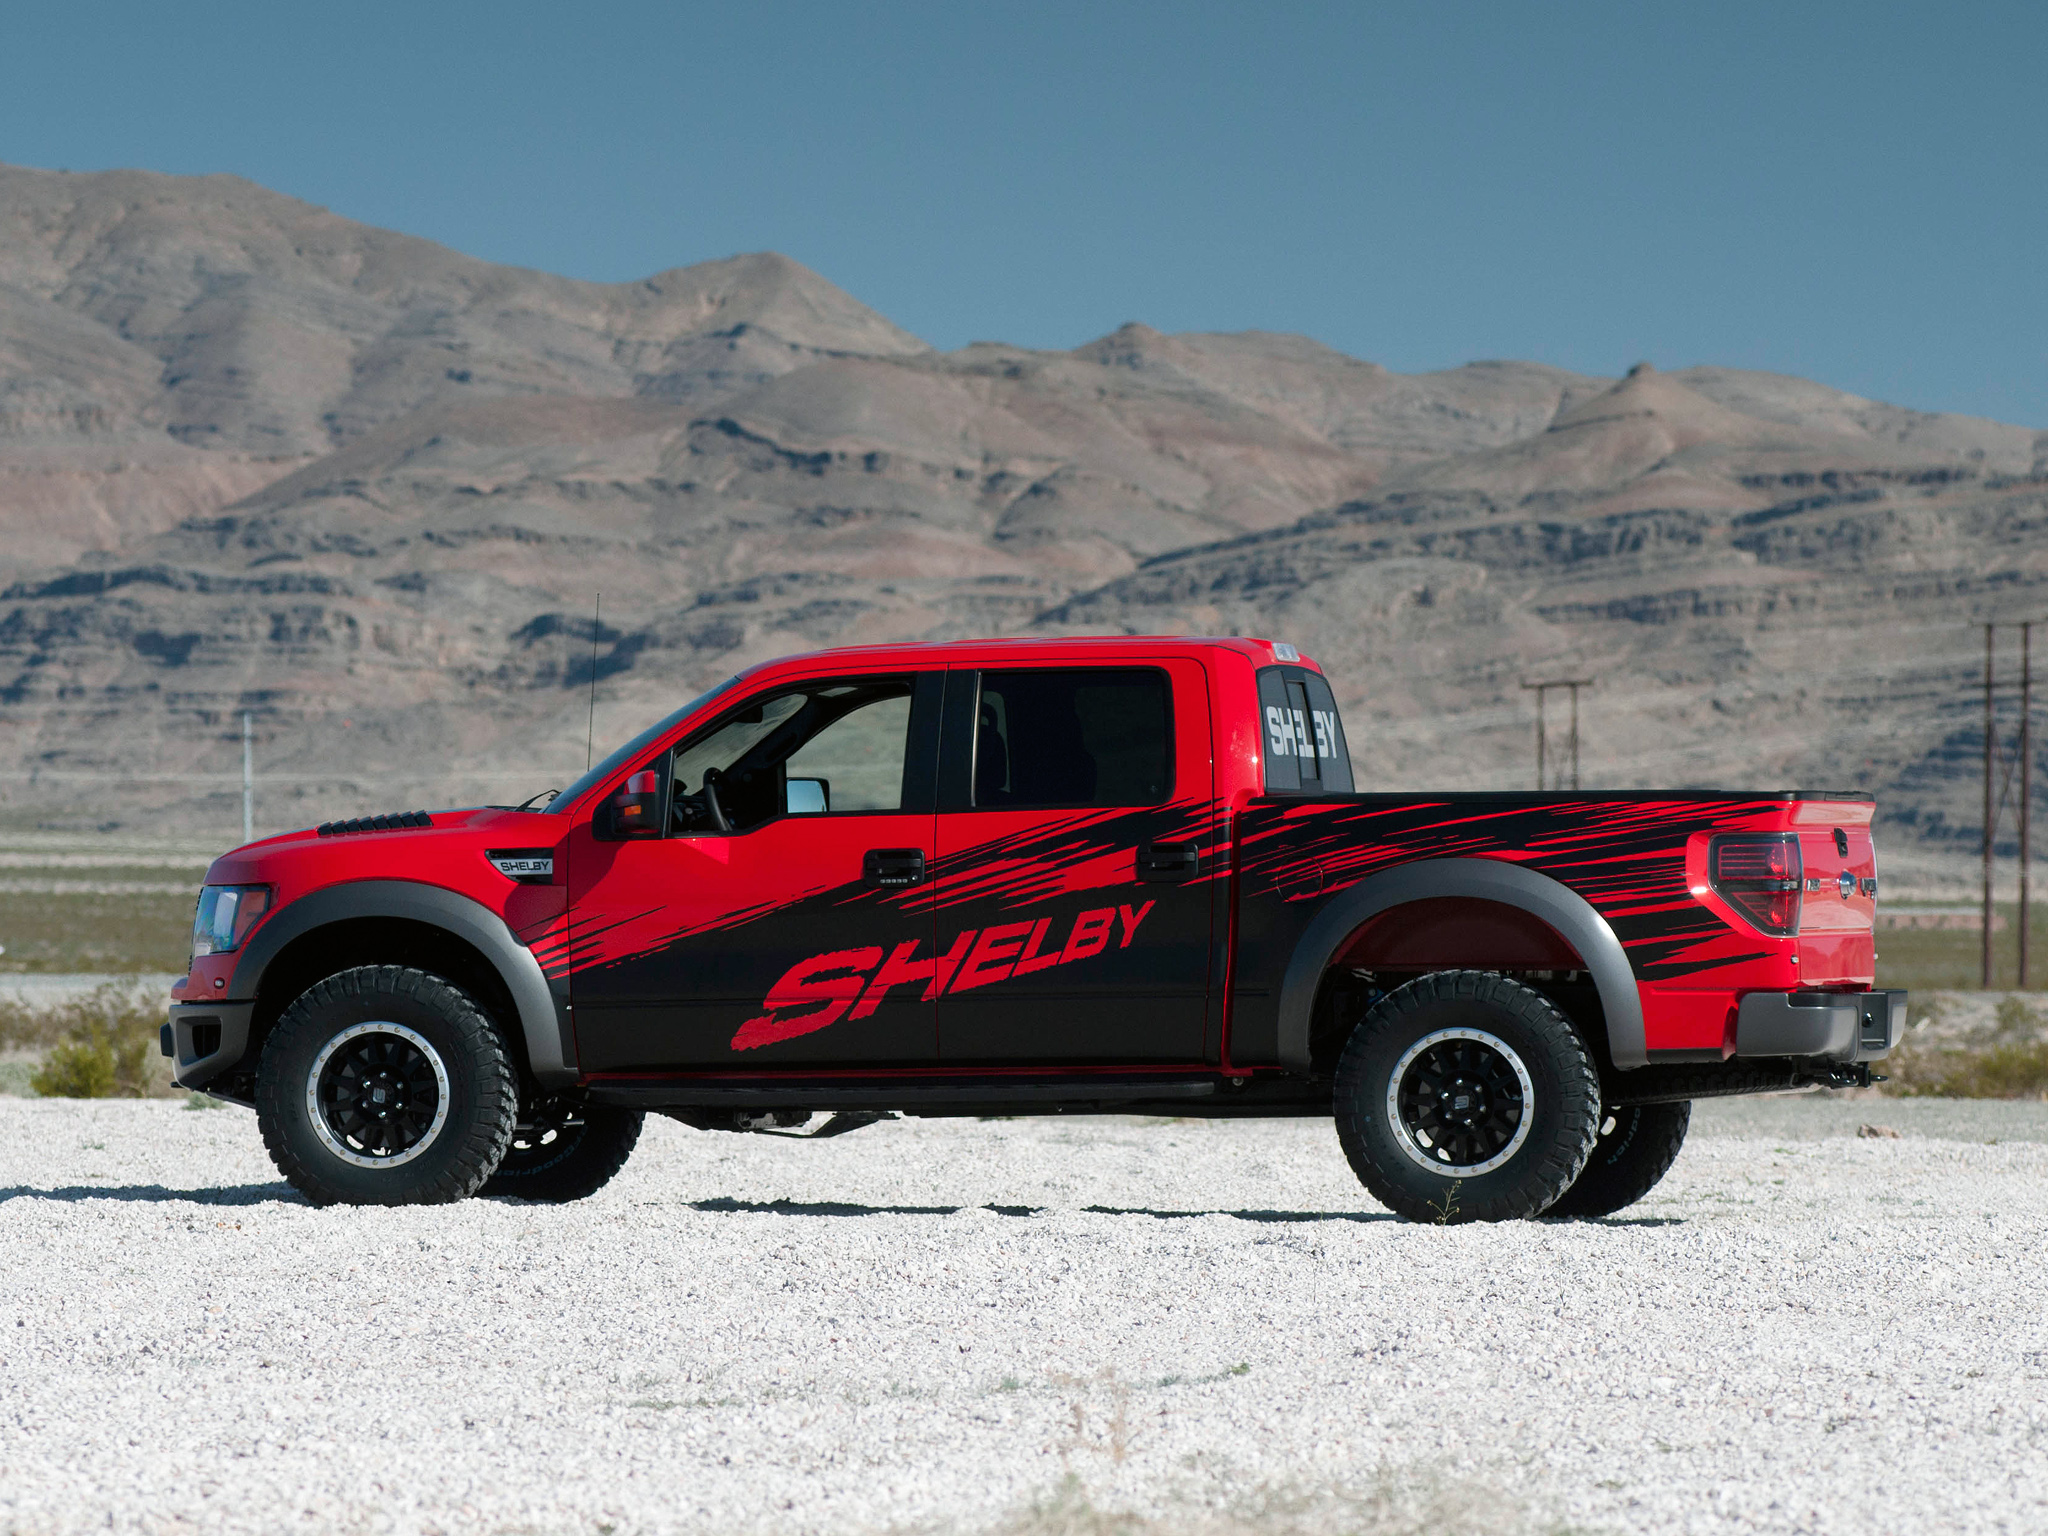 2013 shelby ford f 150 svt raptor truck trucks 4x4 off road muscle f wallpaper 2048x1536. Black Bedroom Furniture Sets. Home Design Ideas